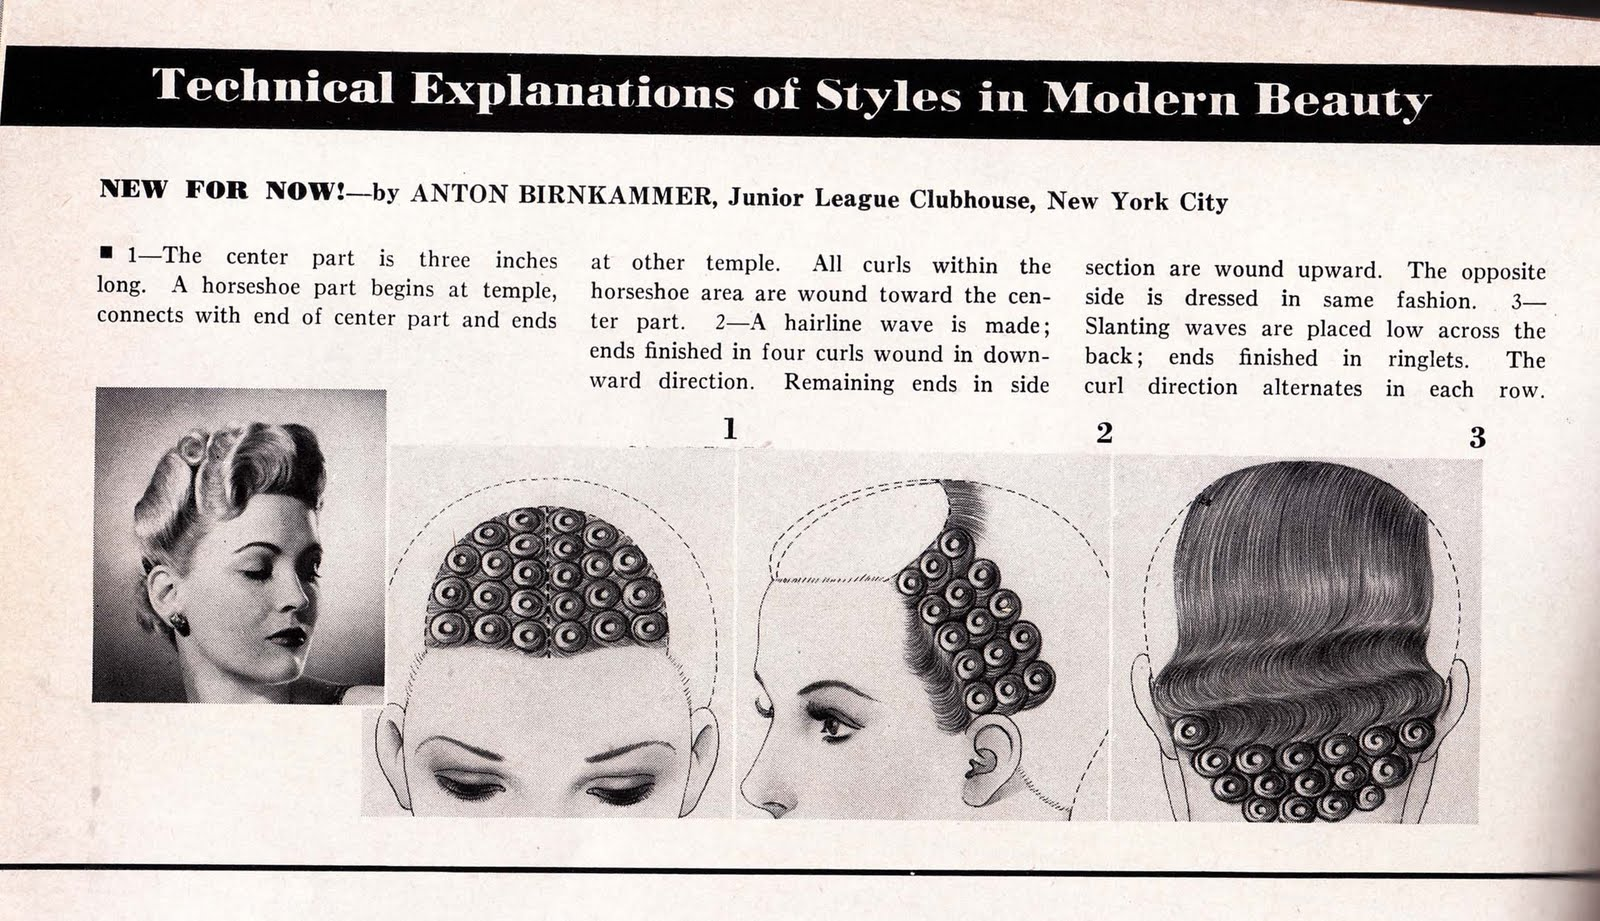 Pin Curl Diagram Wiring Software Open Source The Importance Of Being Vintage Pomps Curls And Waves